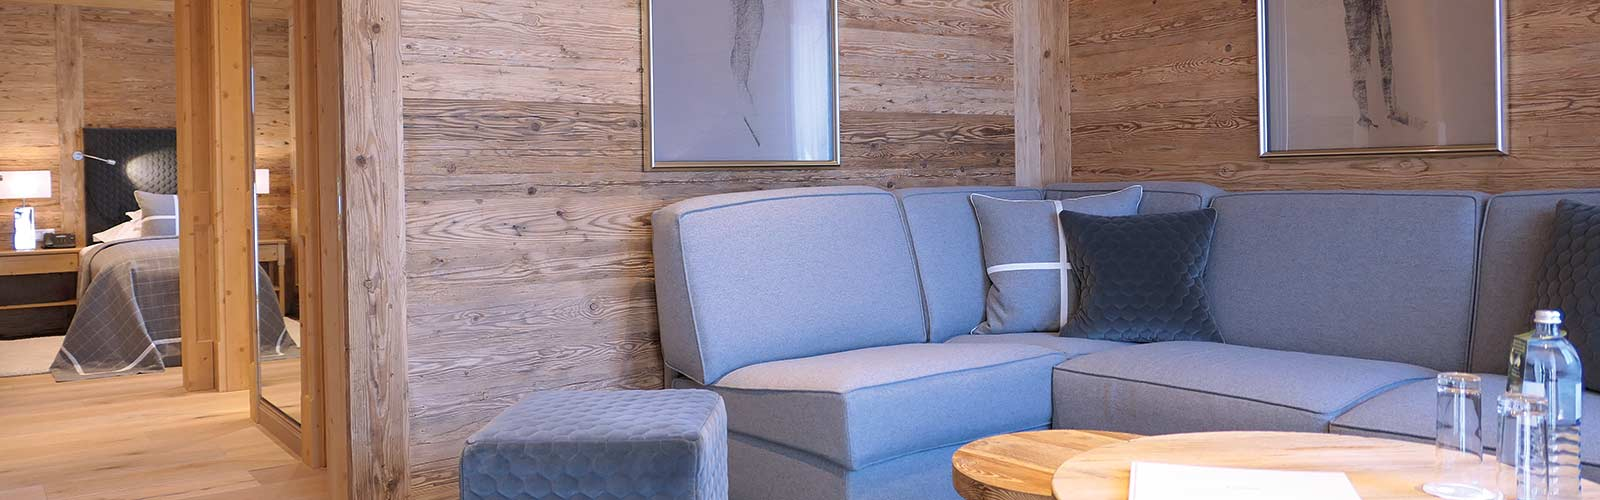 Junior Suite, 40 m2